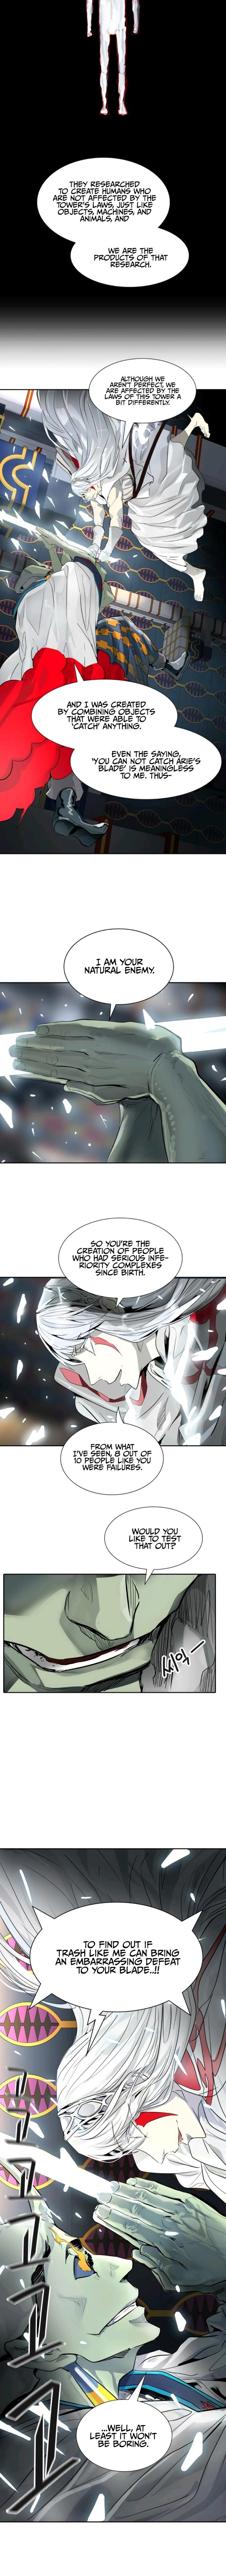 Tower Of God, Chapter 487 image 022